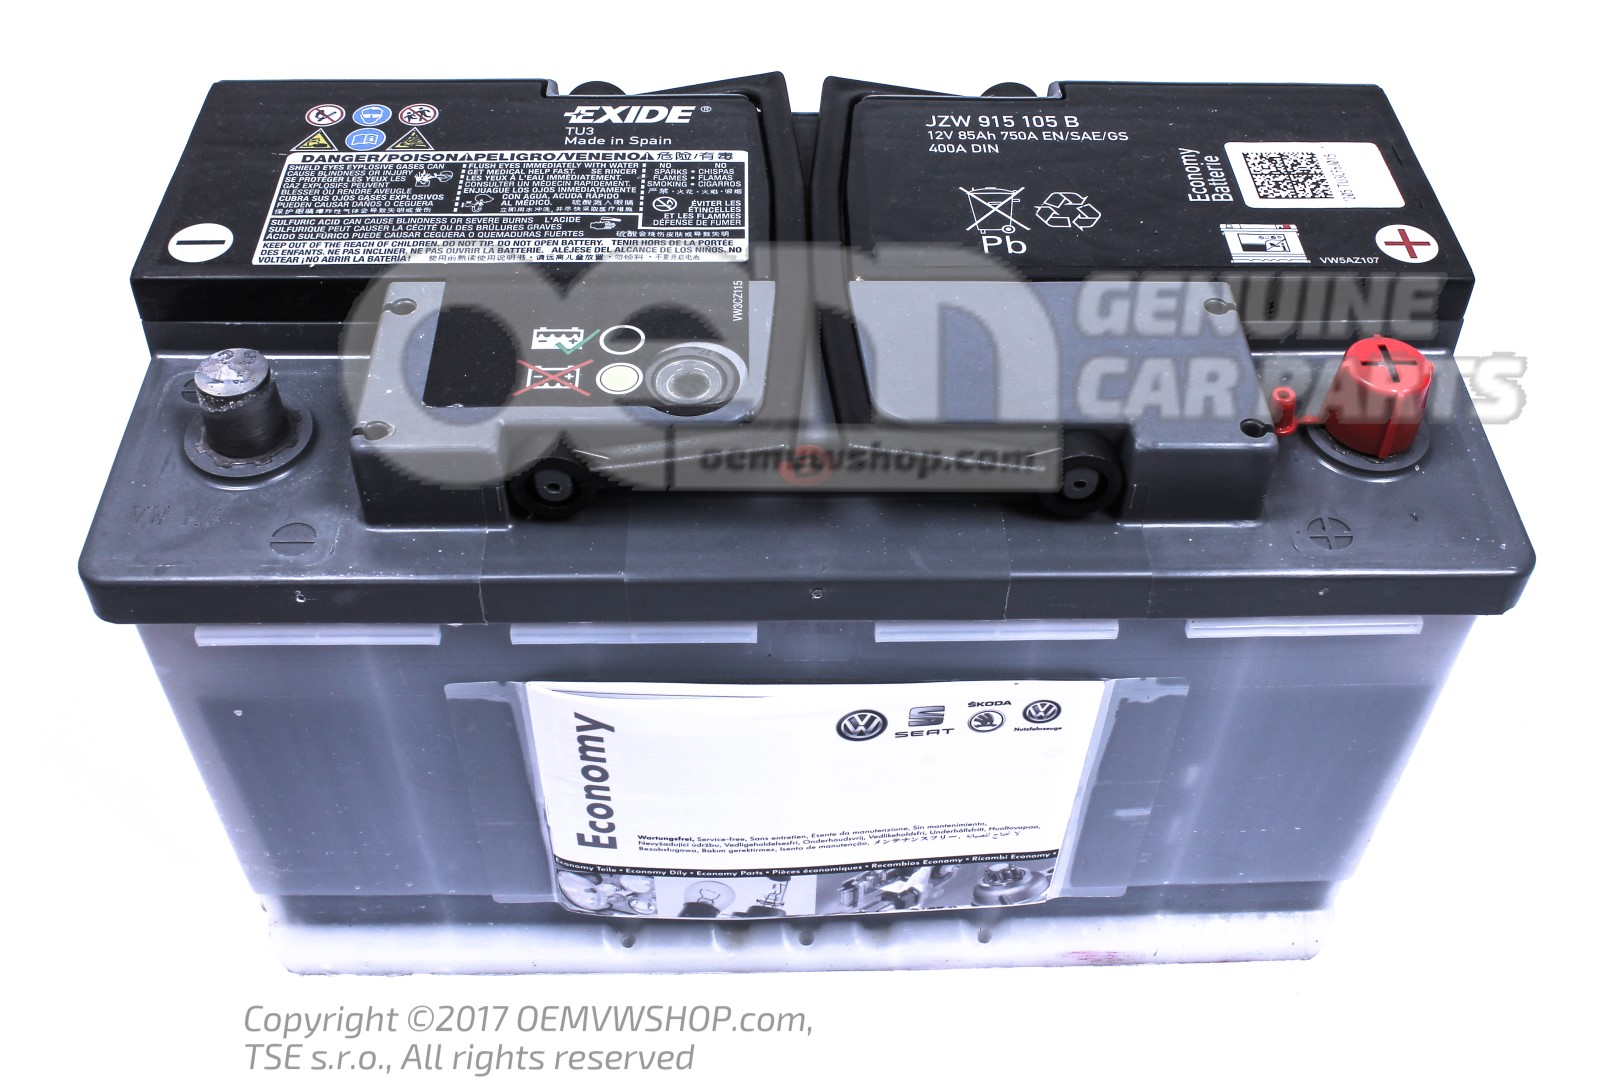 Battery With State Of Charge Display Full And Charged Jzw915105b Oemvwshop Com